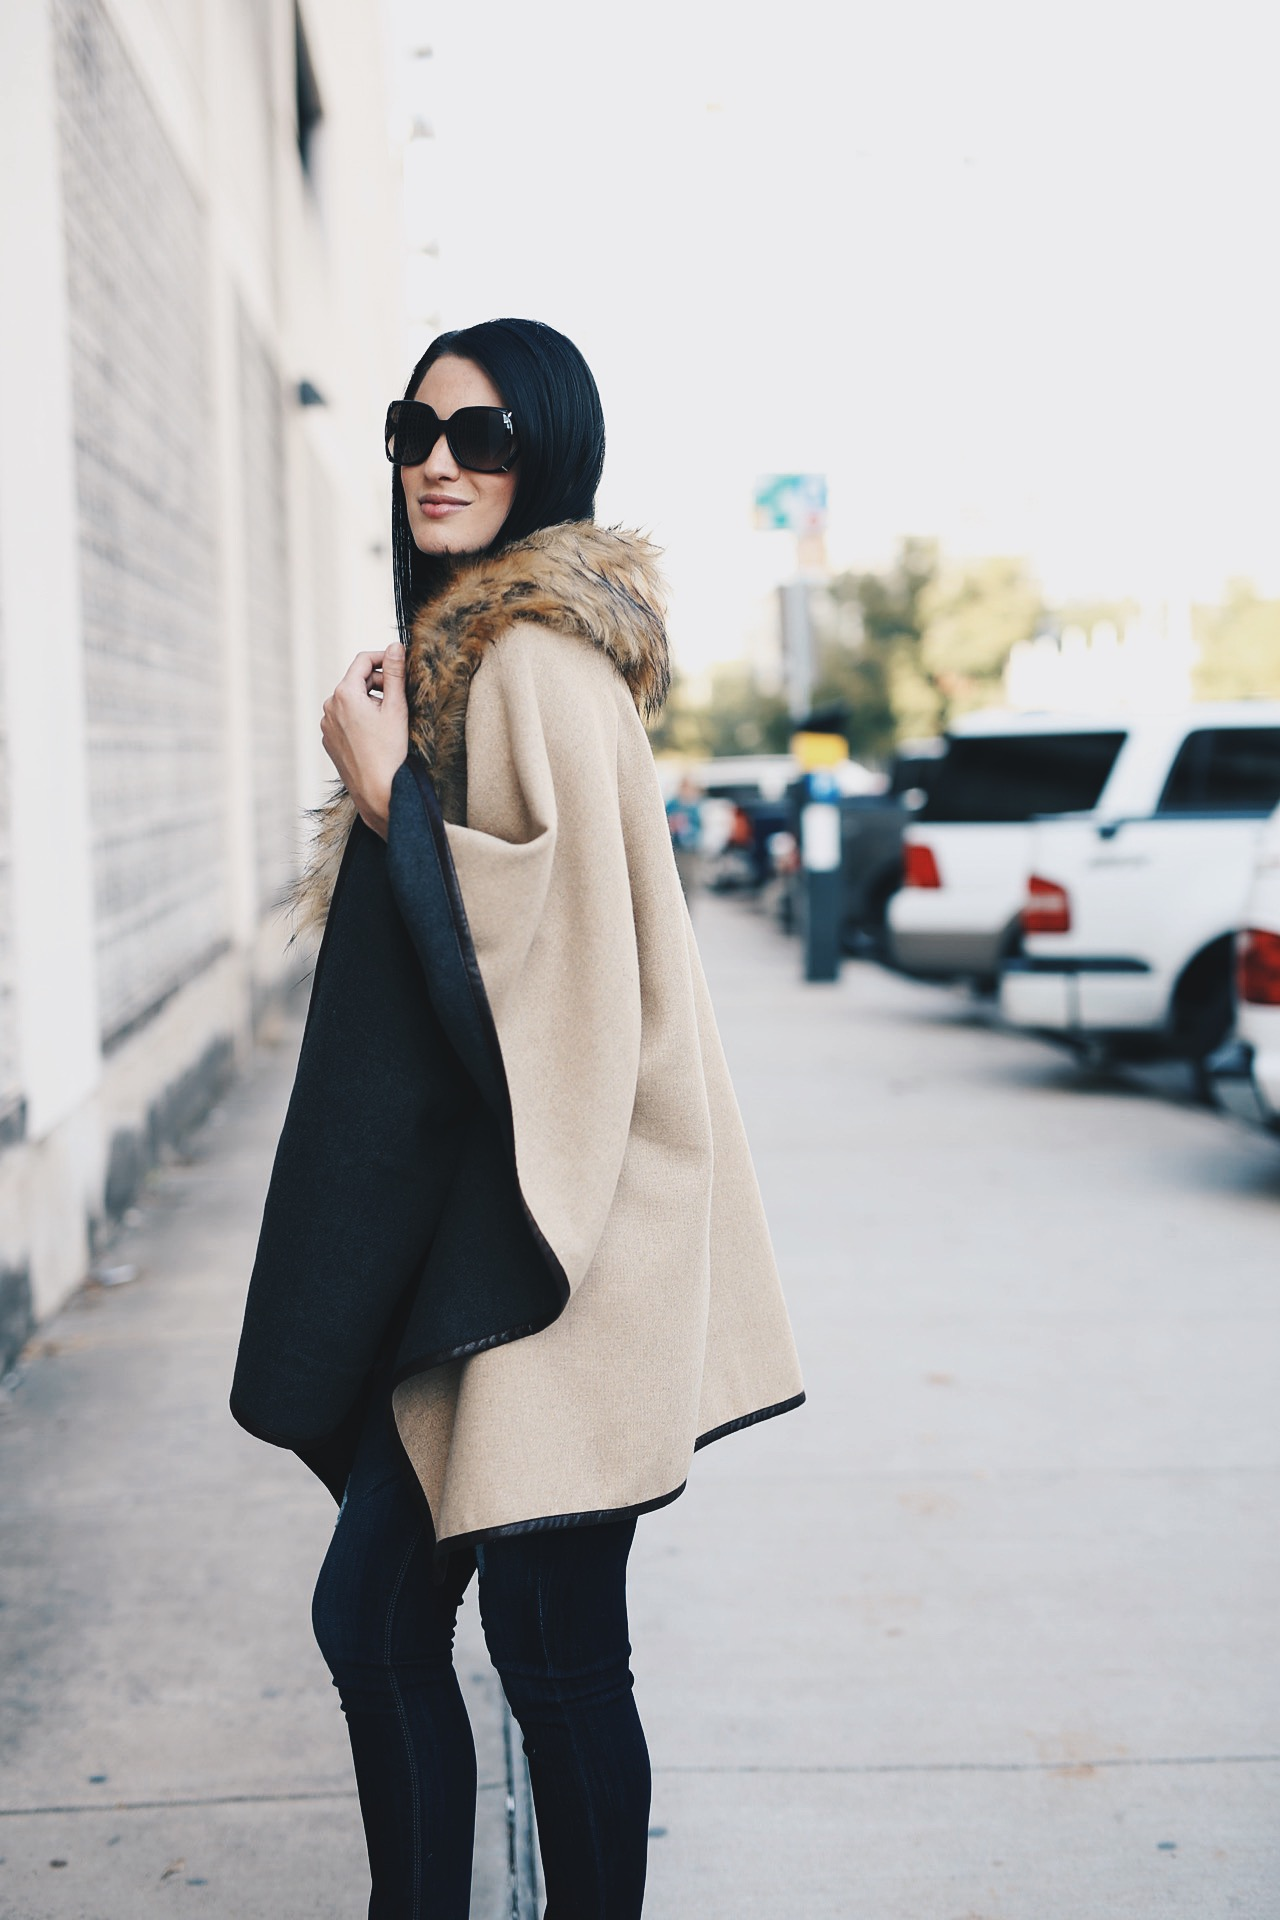 Faux Fur Cape | how to style a fur cape | how to wear a fur cape | faux fur fashion | styling faux fur | fall fashion tips | fall outfit ideas | fall style tips | what to wear for fall | cool weather fashion | fashion for fall | style tips for fall | outfit ideas for fall || Dressed to Kill #fauxfur #capestyle #furcape